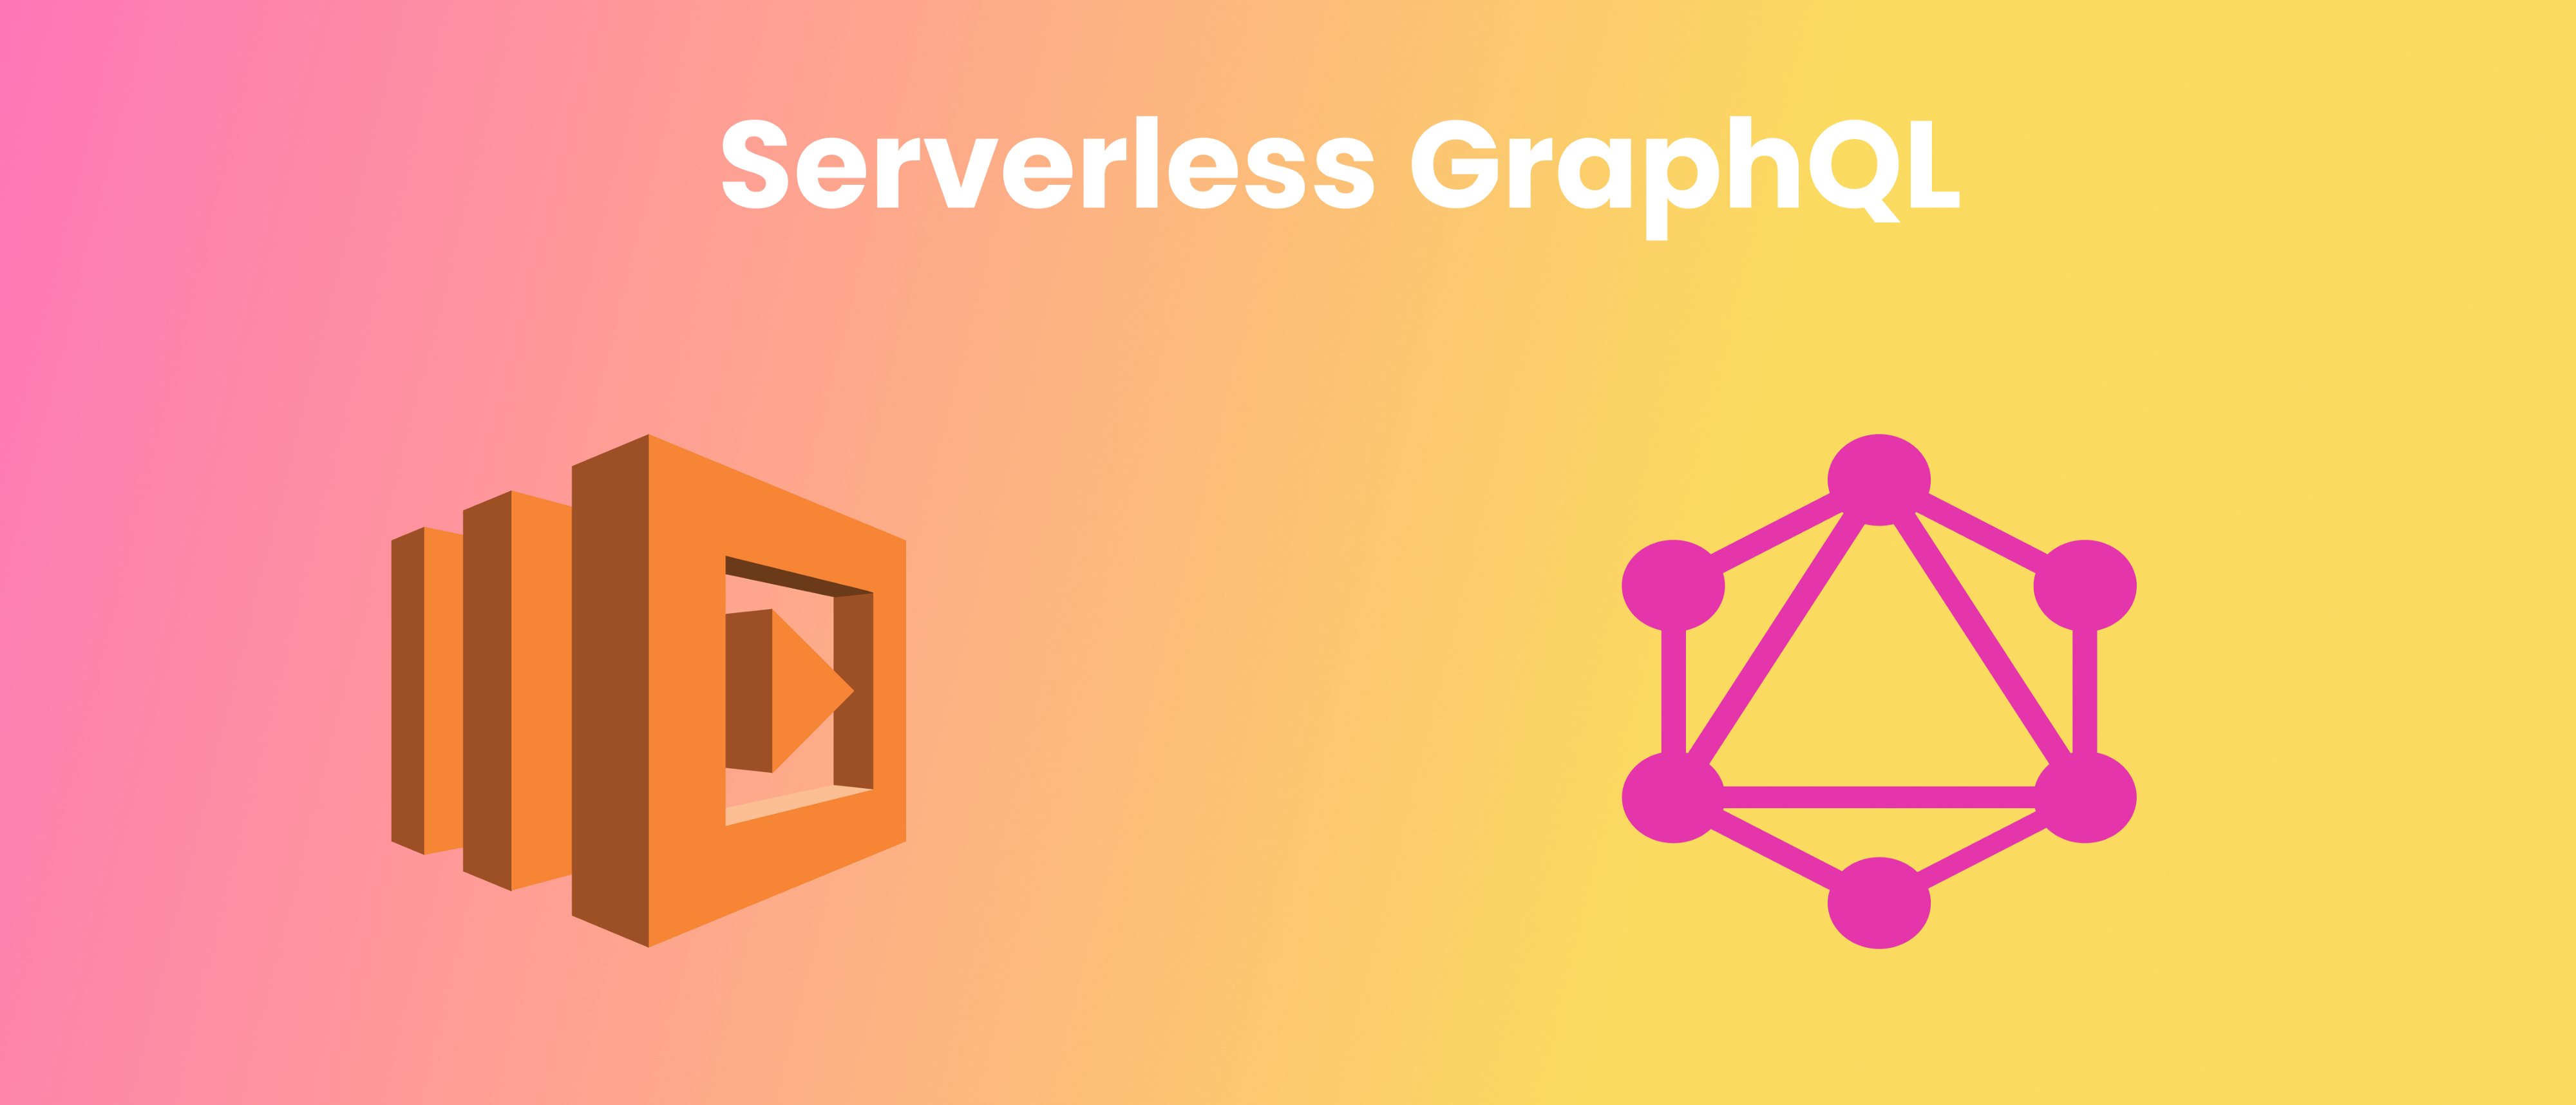 My Experience With Serverless GraphQL 👨 🎨 - ITNEXT